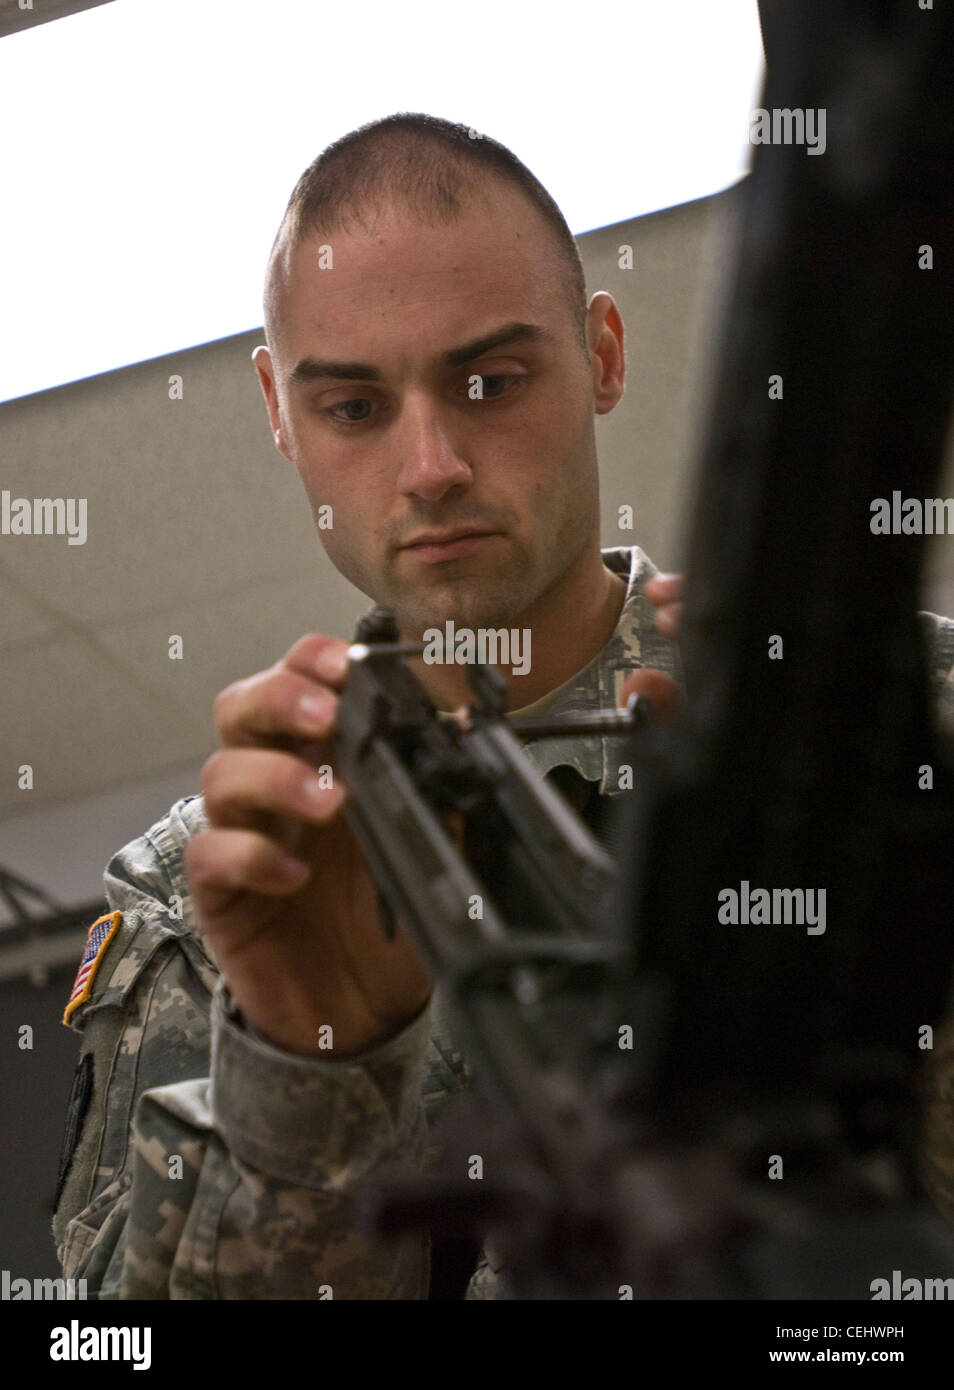 372nd Engineer Brigade High Resolution Stock Photography And Images Alamy